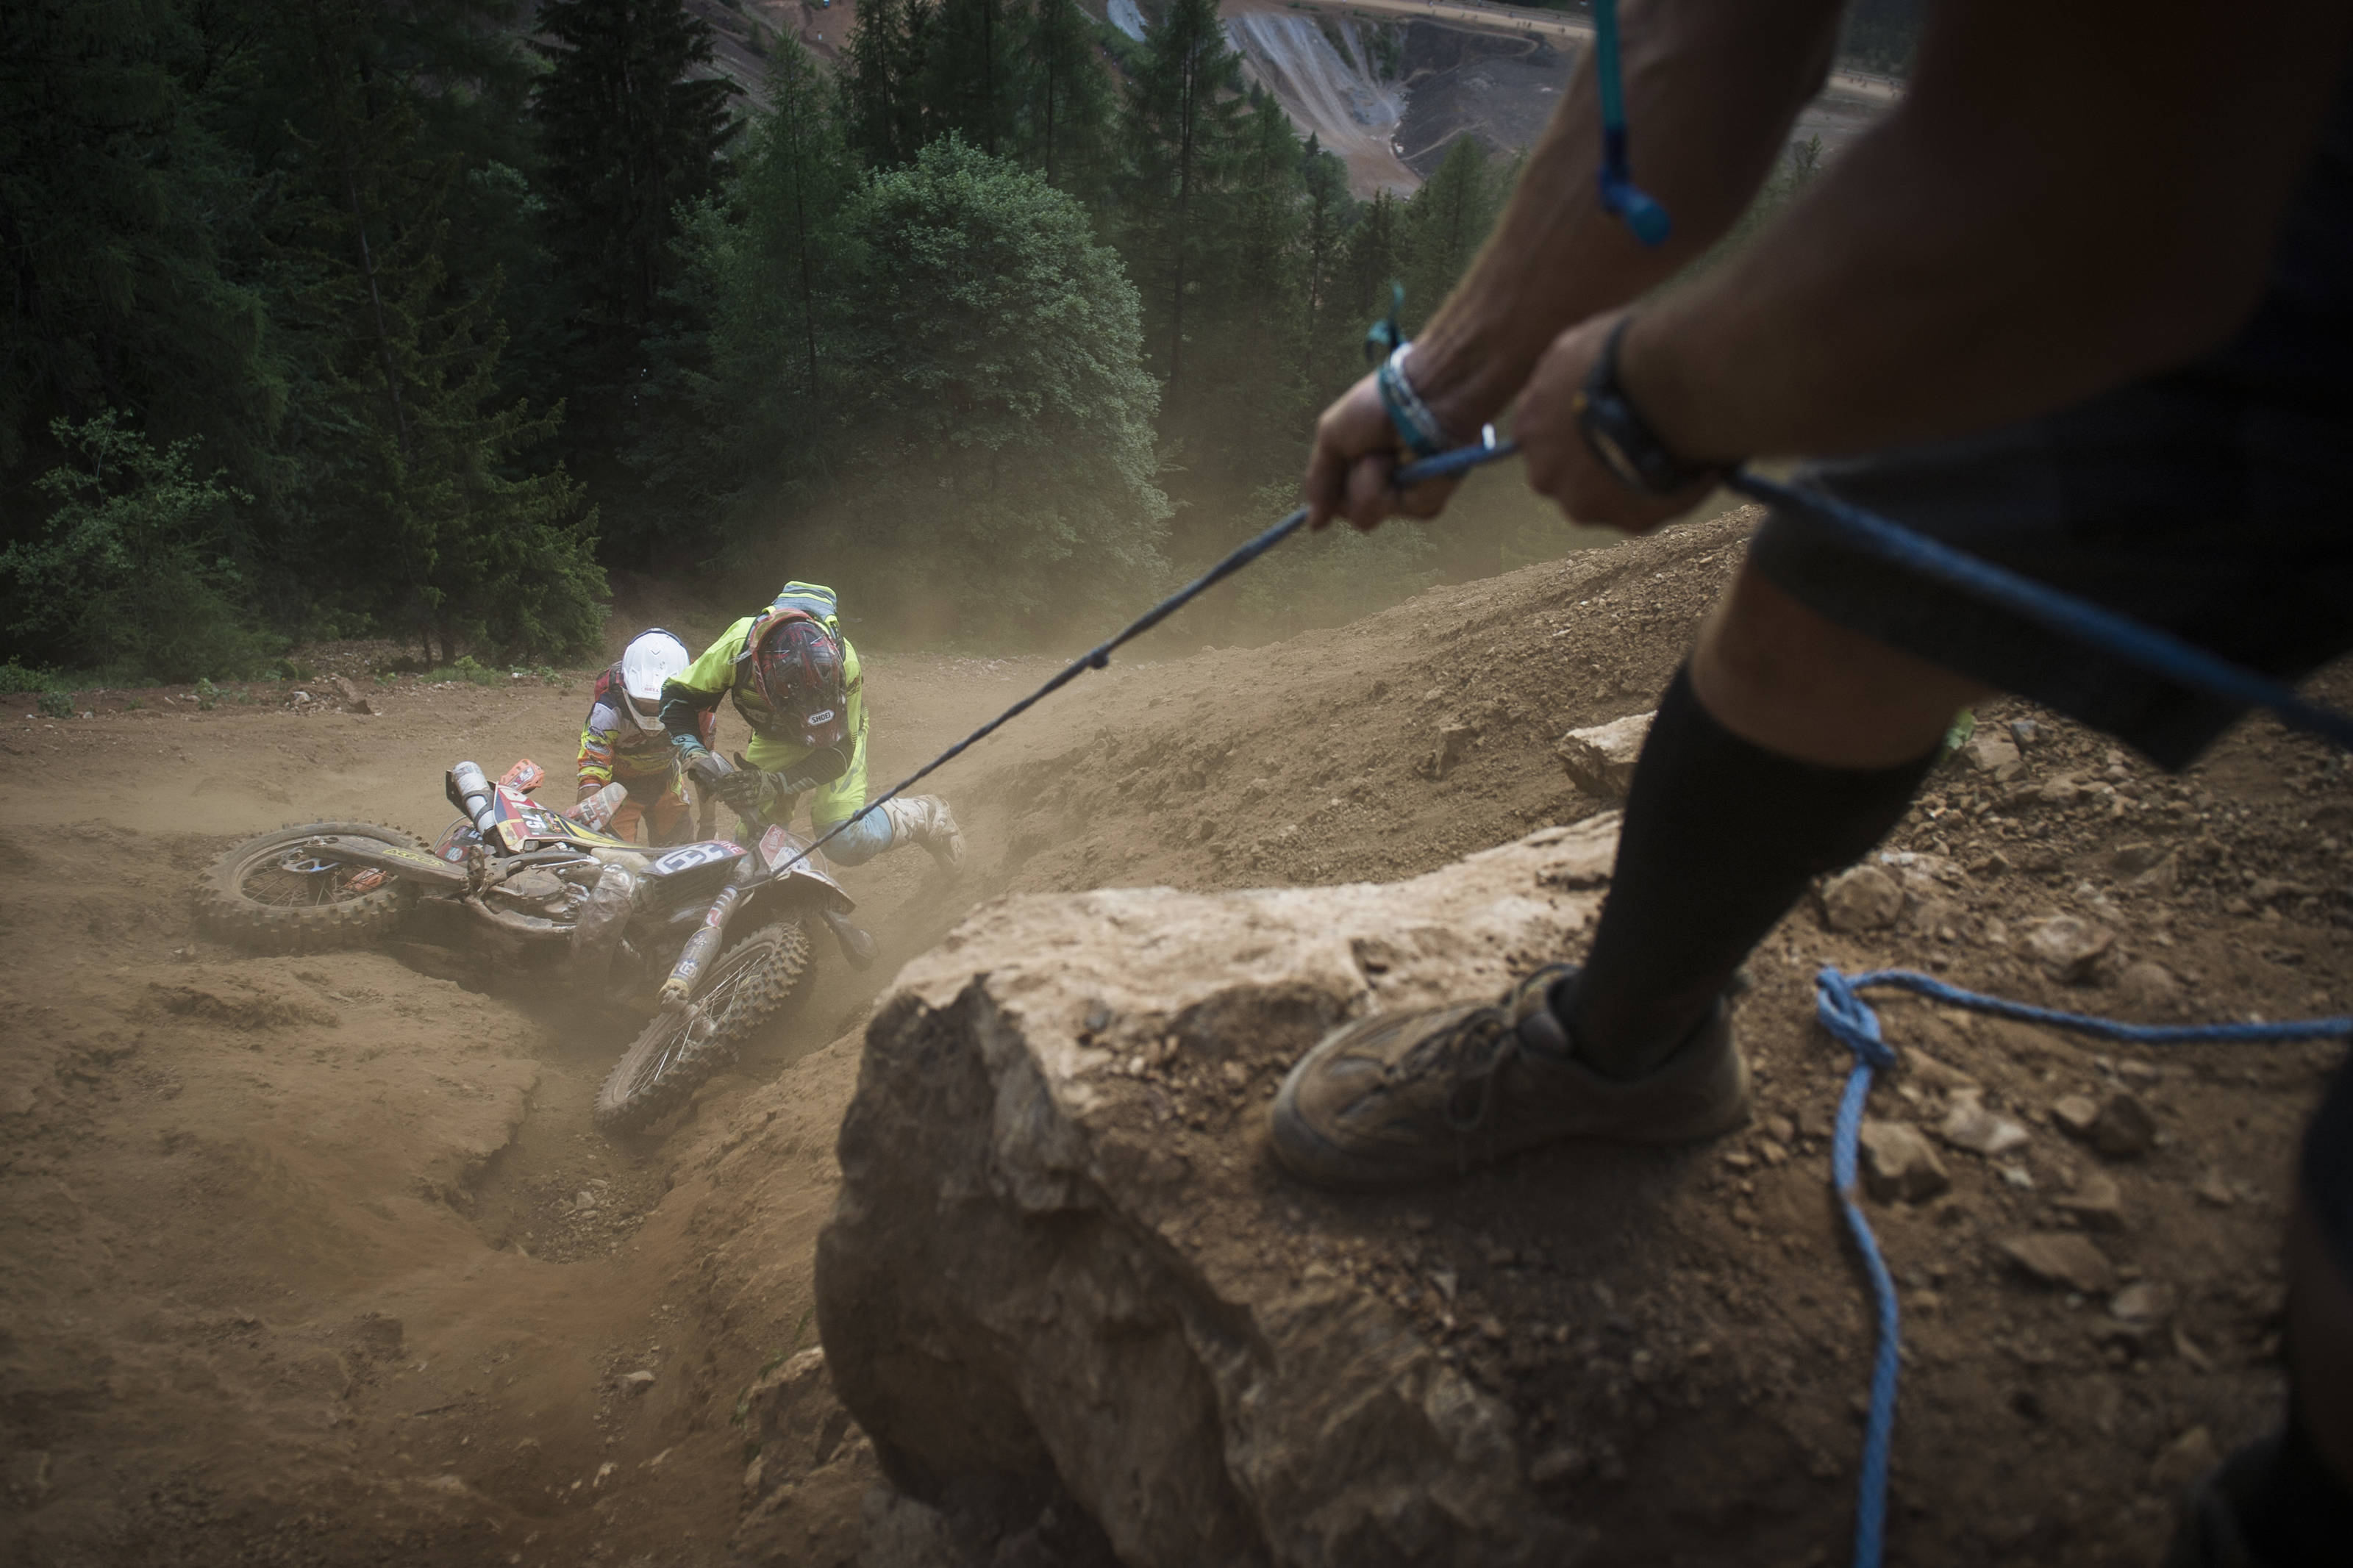 AP-1VV5SU6Y52111_news Graham Jarvis cucerește Erzbergrodeo Red Bull Hare Scramble